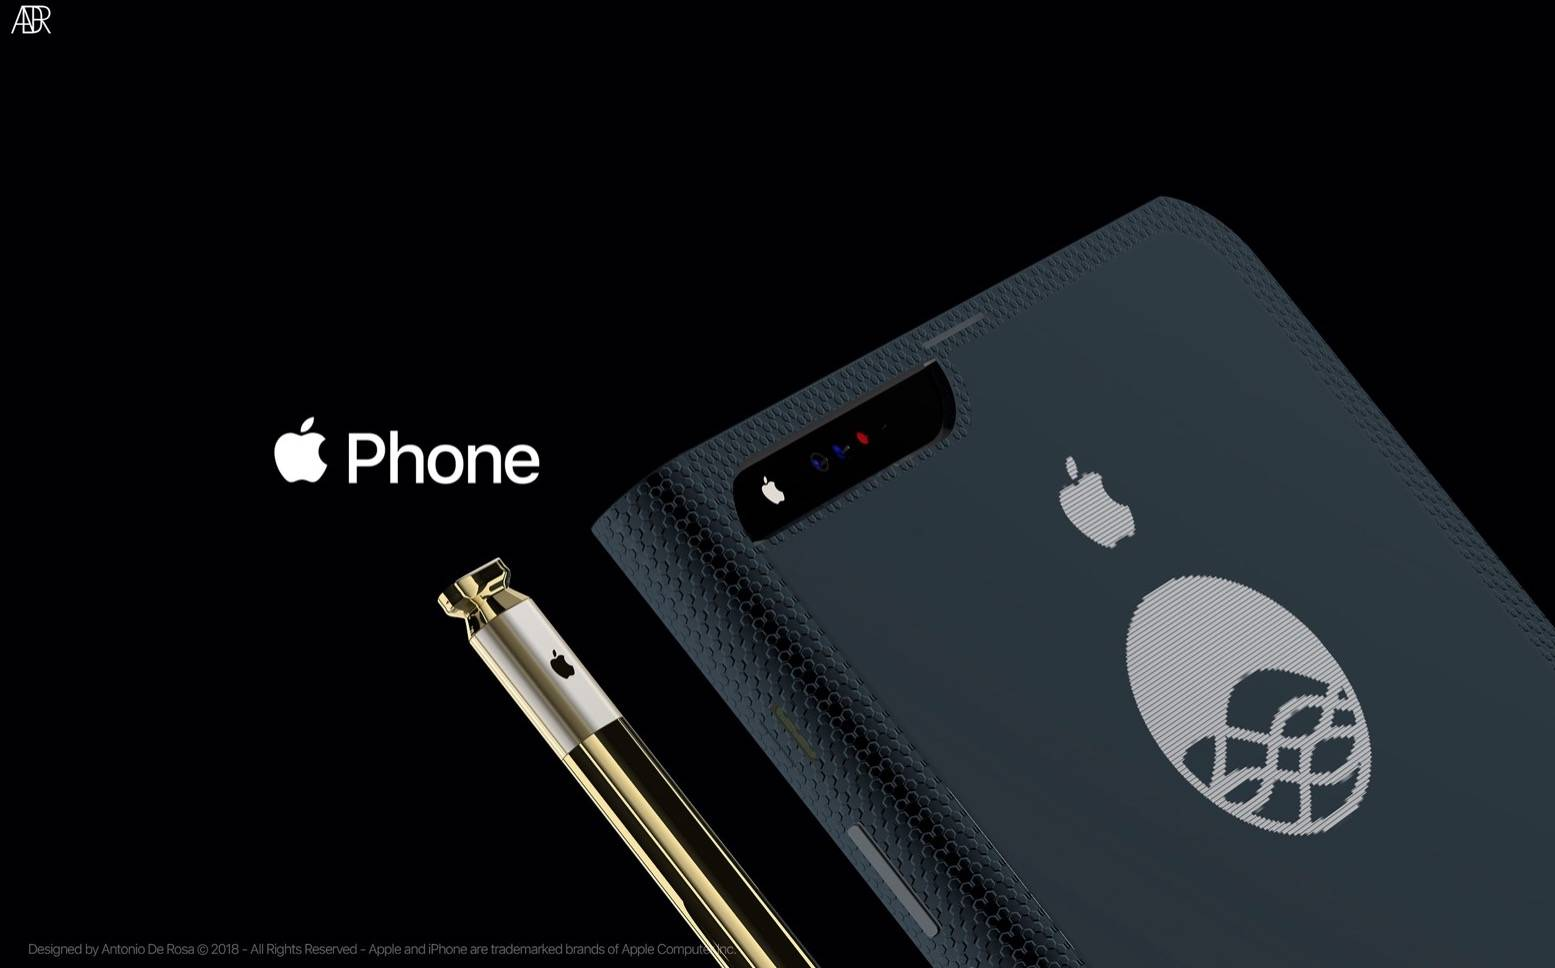 New Apple Iphone Concept Images For 2018 7